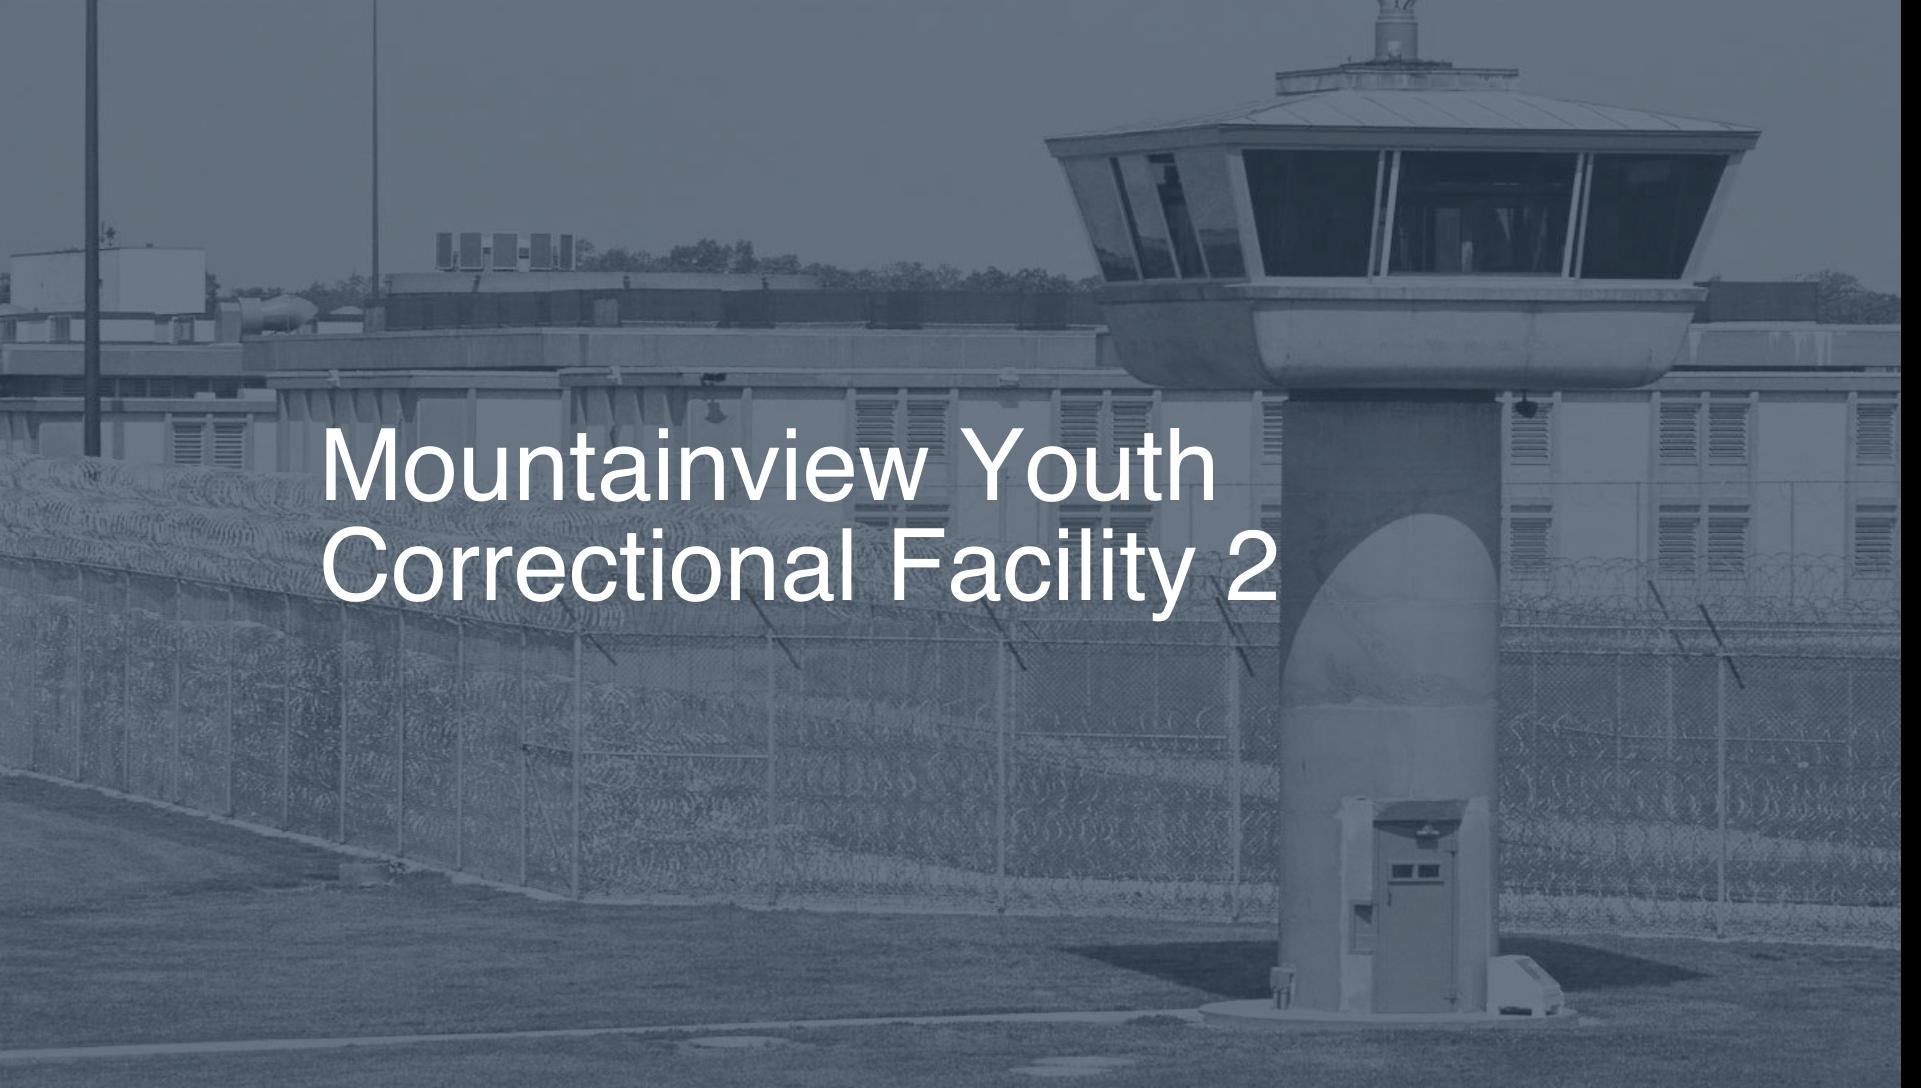 Mountainview Youth Correctional Facility correctional facility picture